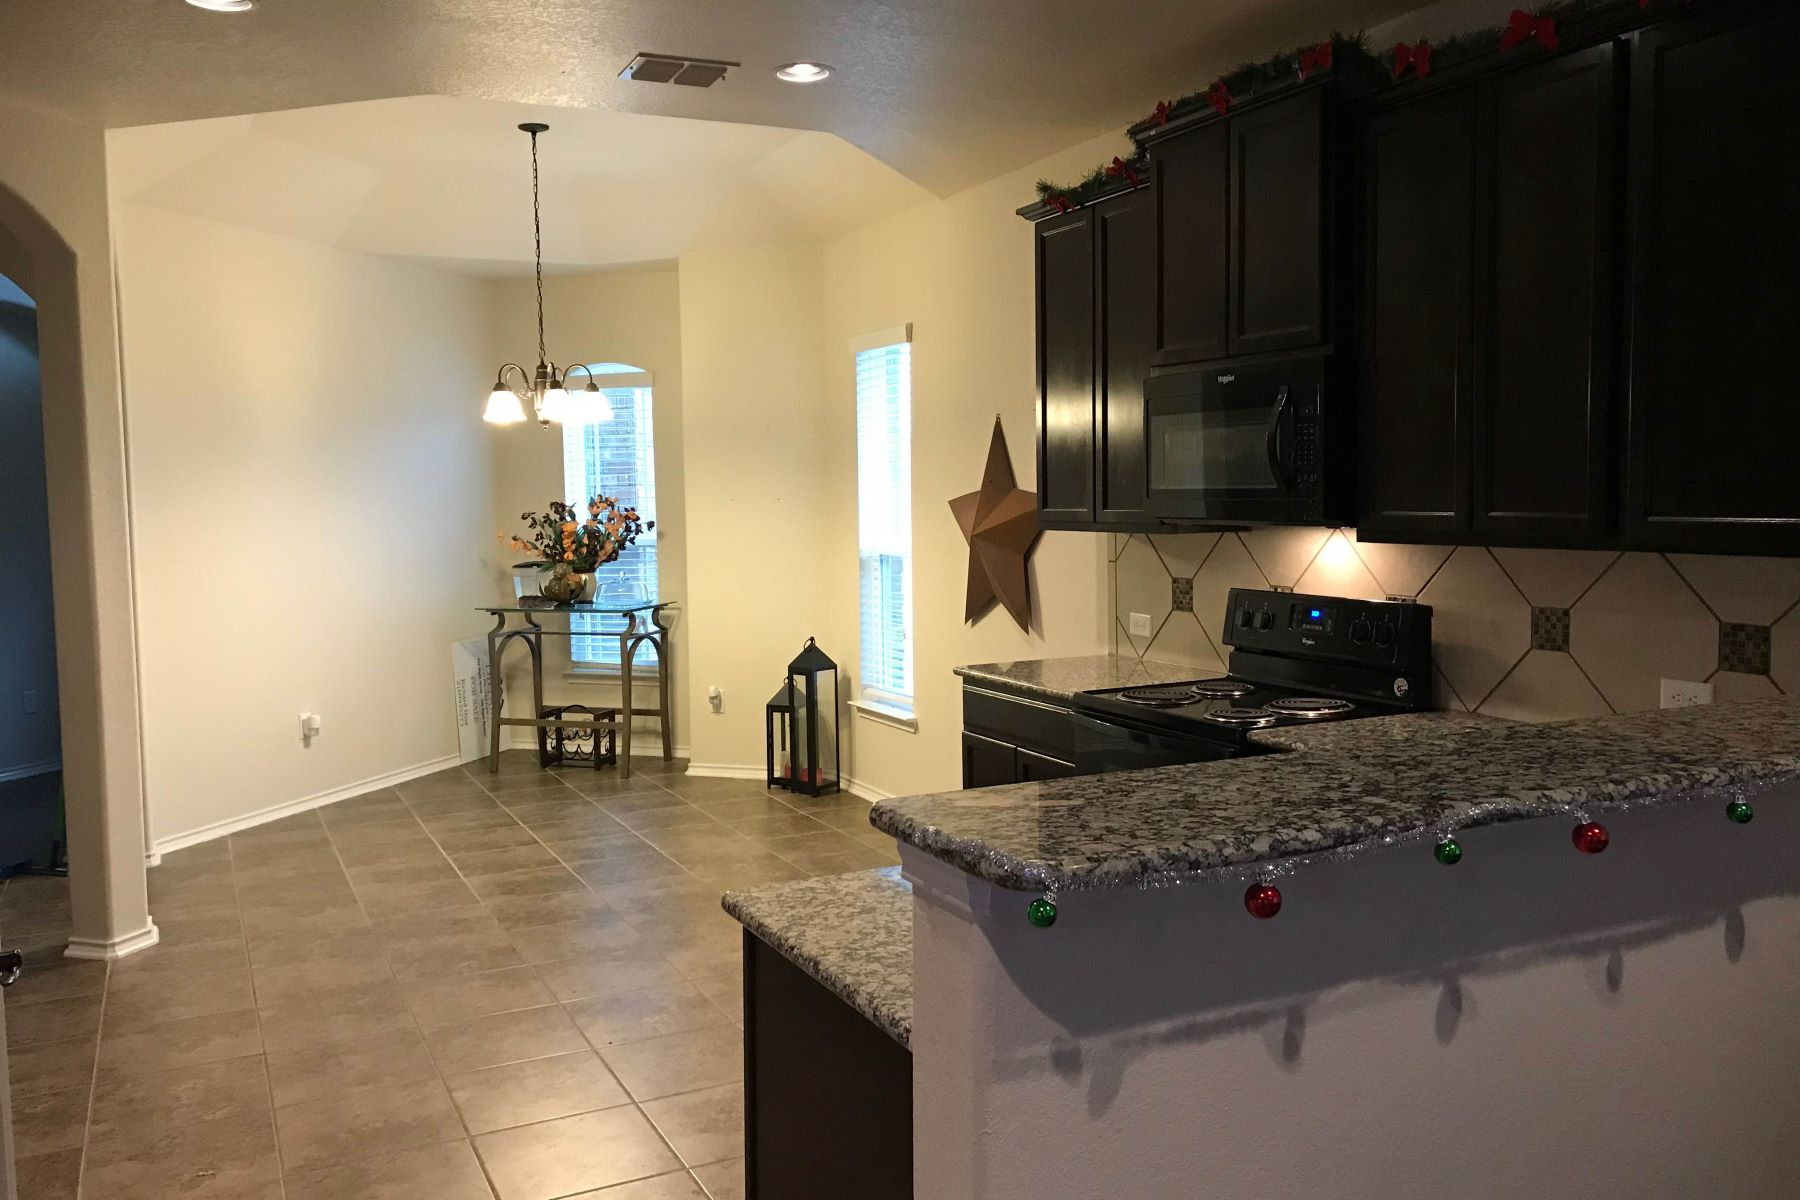 Additional photo for property listing at 1326 Crane Court 1326 Crane Court San Antonio, Texas 78245 Estados Unidos